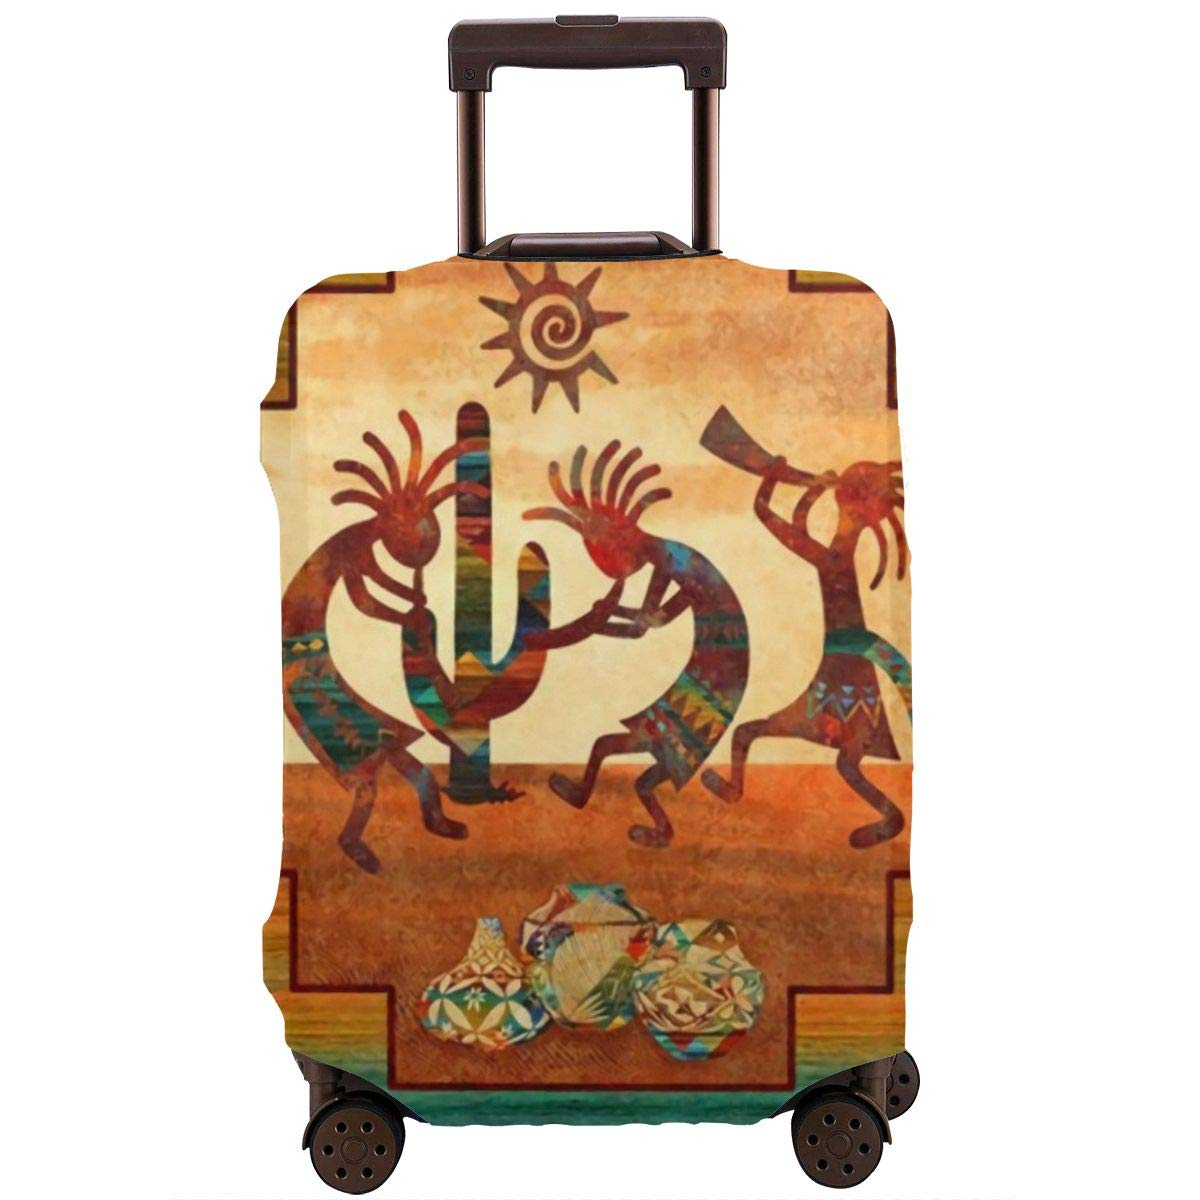 18-32 Inch luggage Cute 3D Luggage Protector Suitcase Cover S M L XL Baby Dinosaur Pattern XL